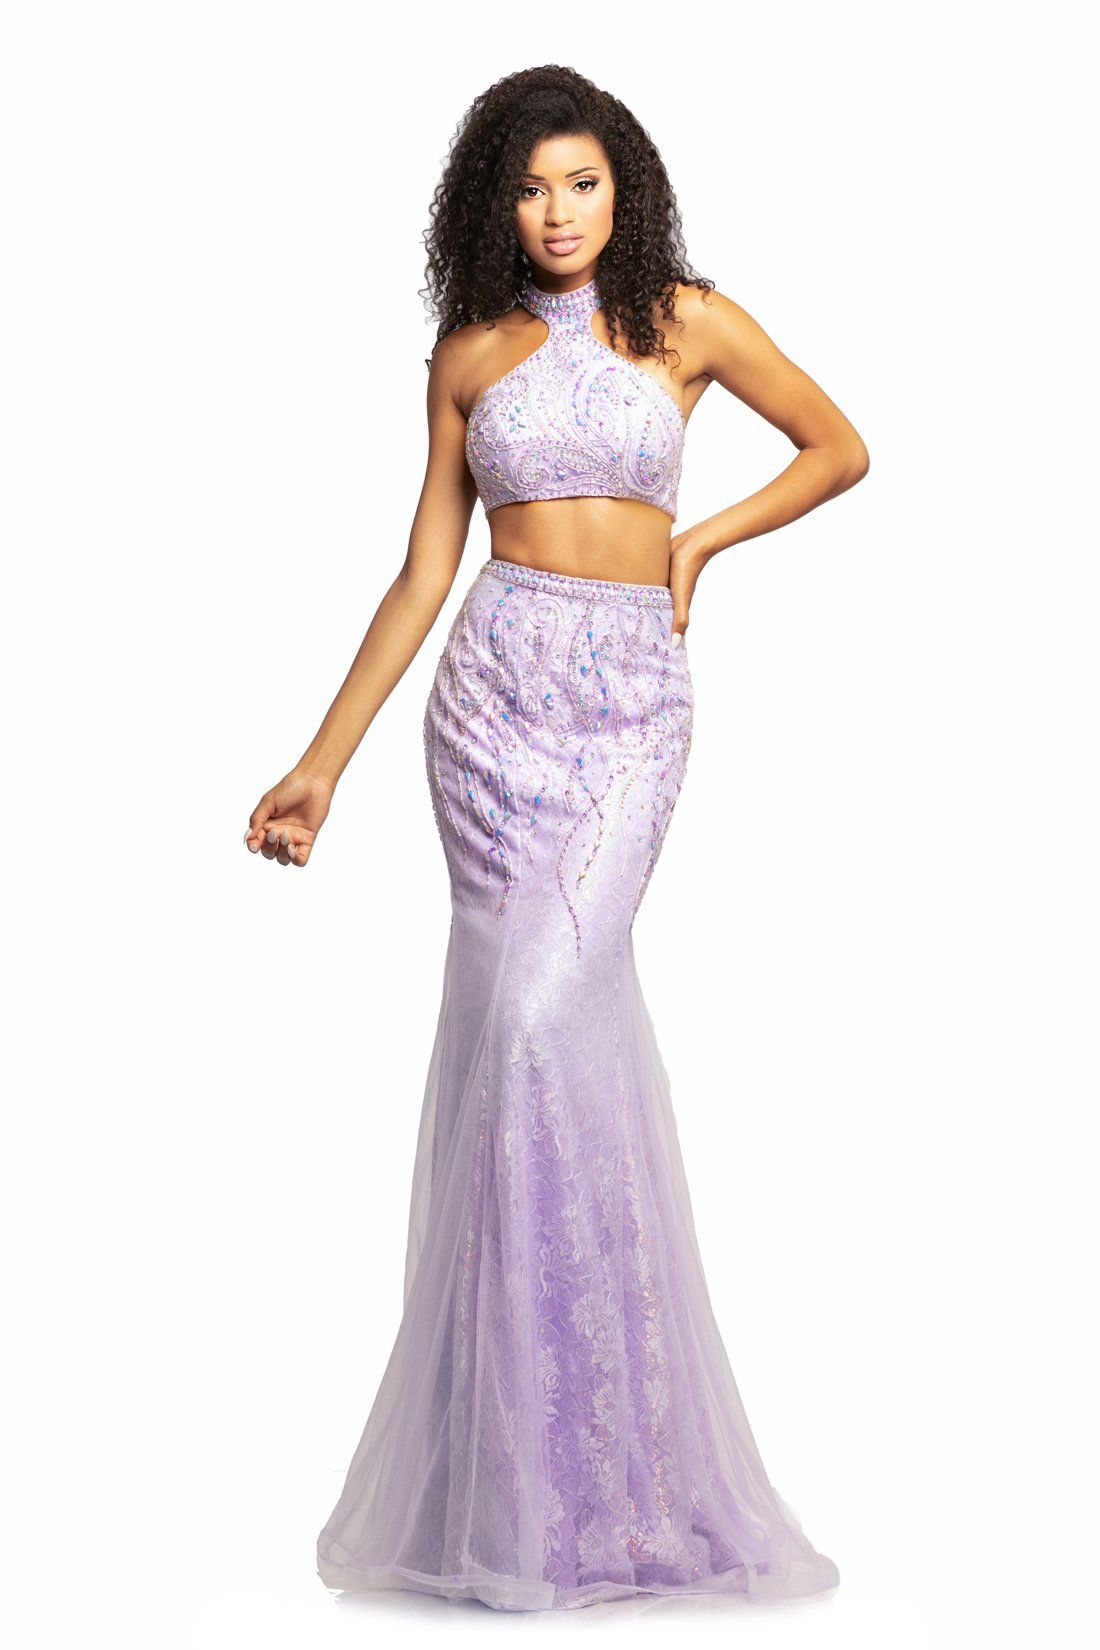 Pin By Justice Darling On Prom Dresses Piece Prom Dress Prom Dresses Pageant Dresses [ 1650 x 1100 Pixel ]